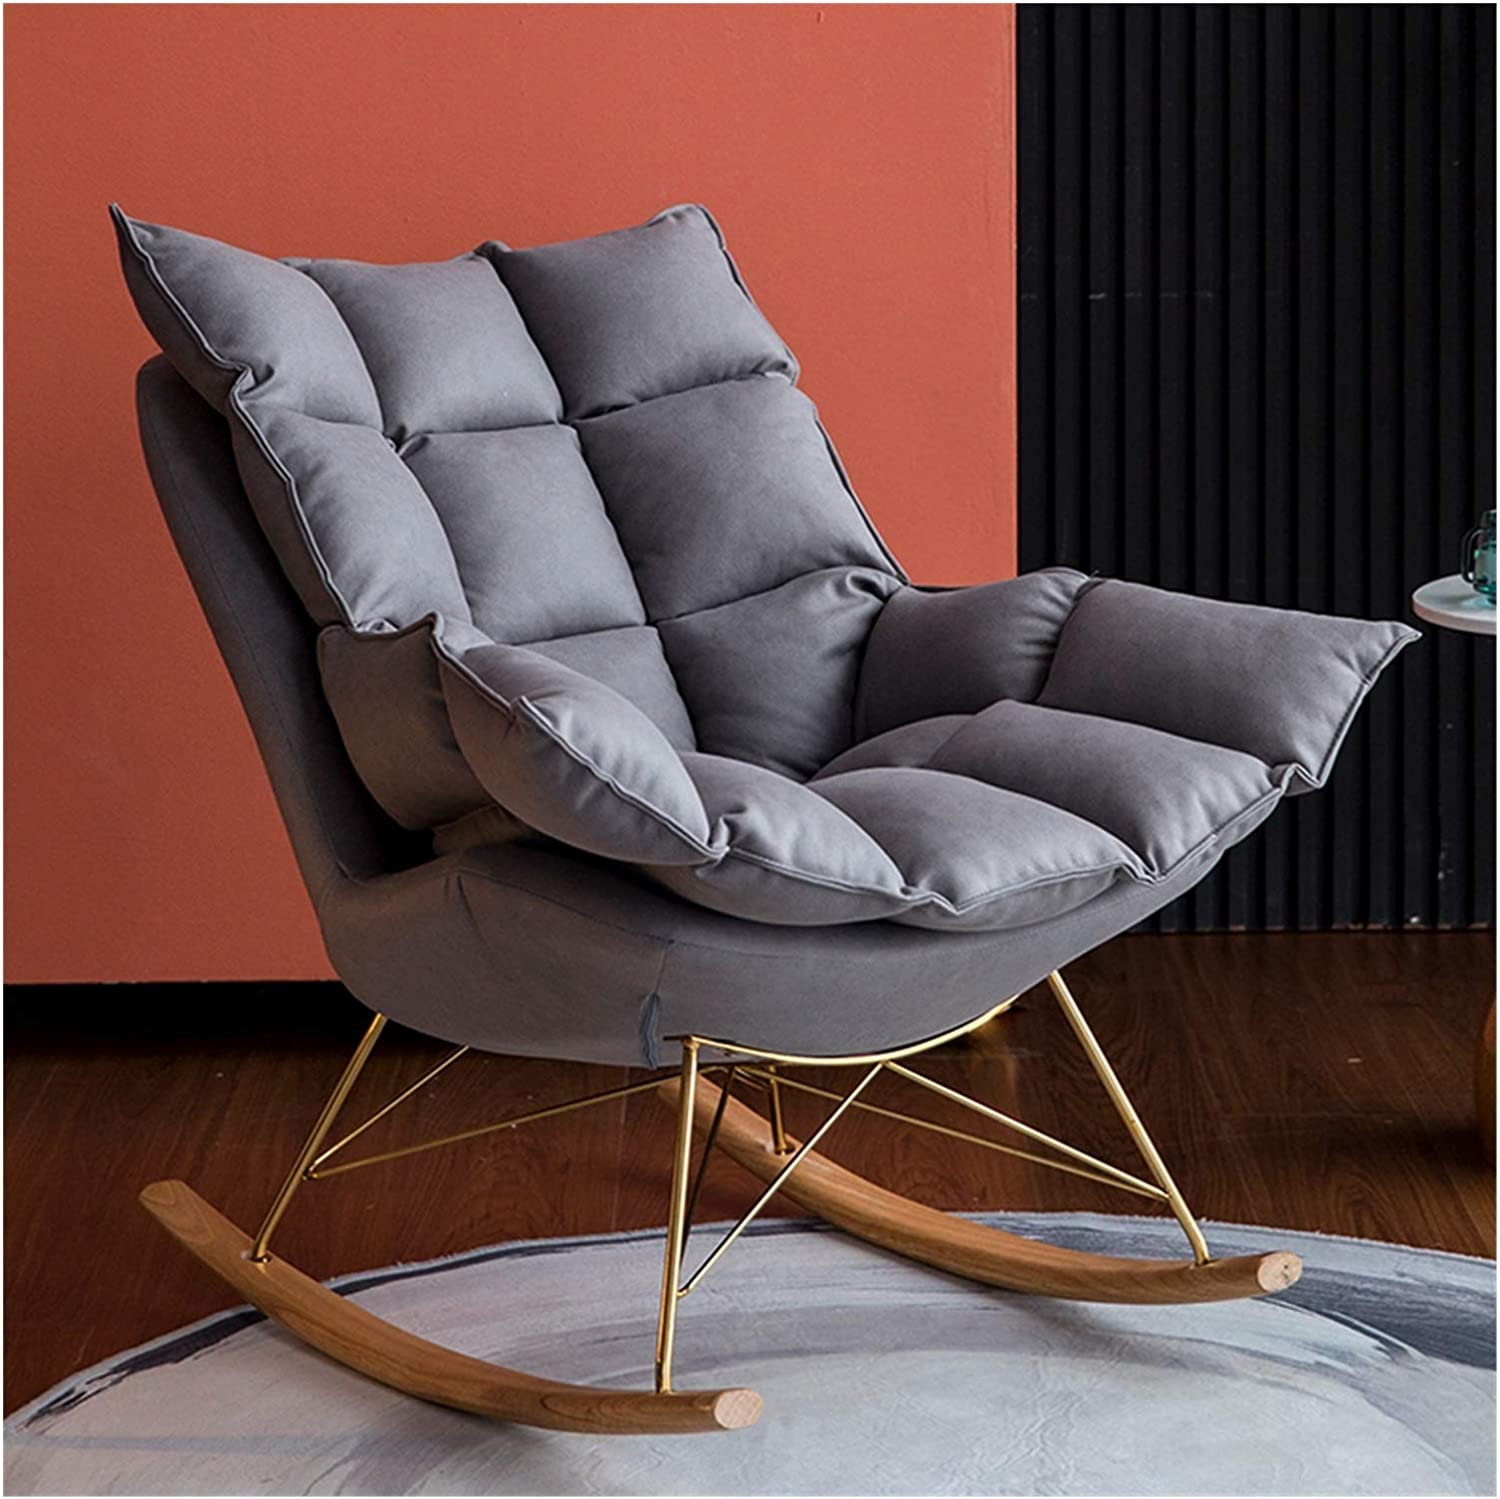 LANLANLife European-Style Rocking Chair Cheap SALE Start Recliner Technolog Super special price